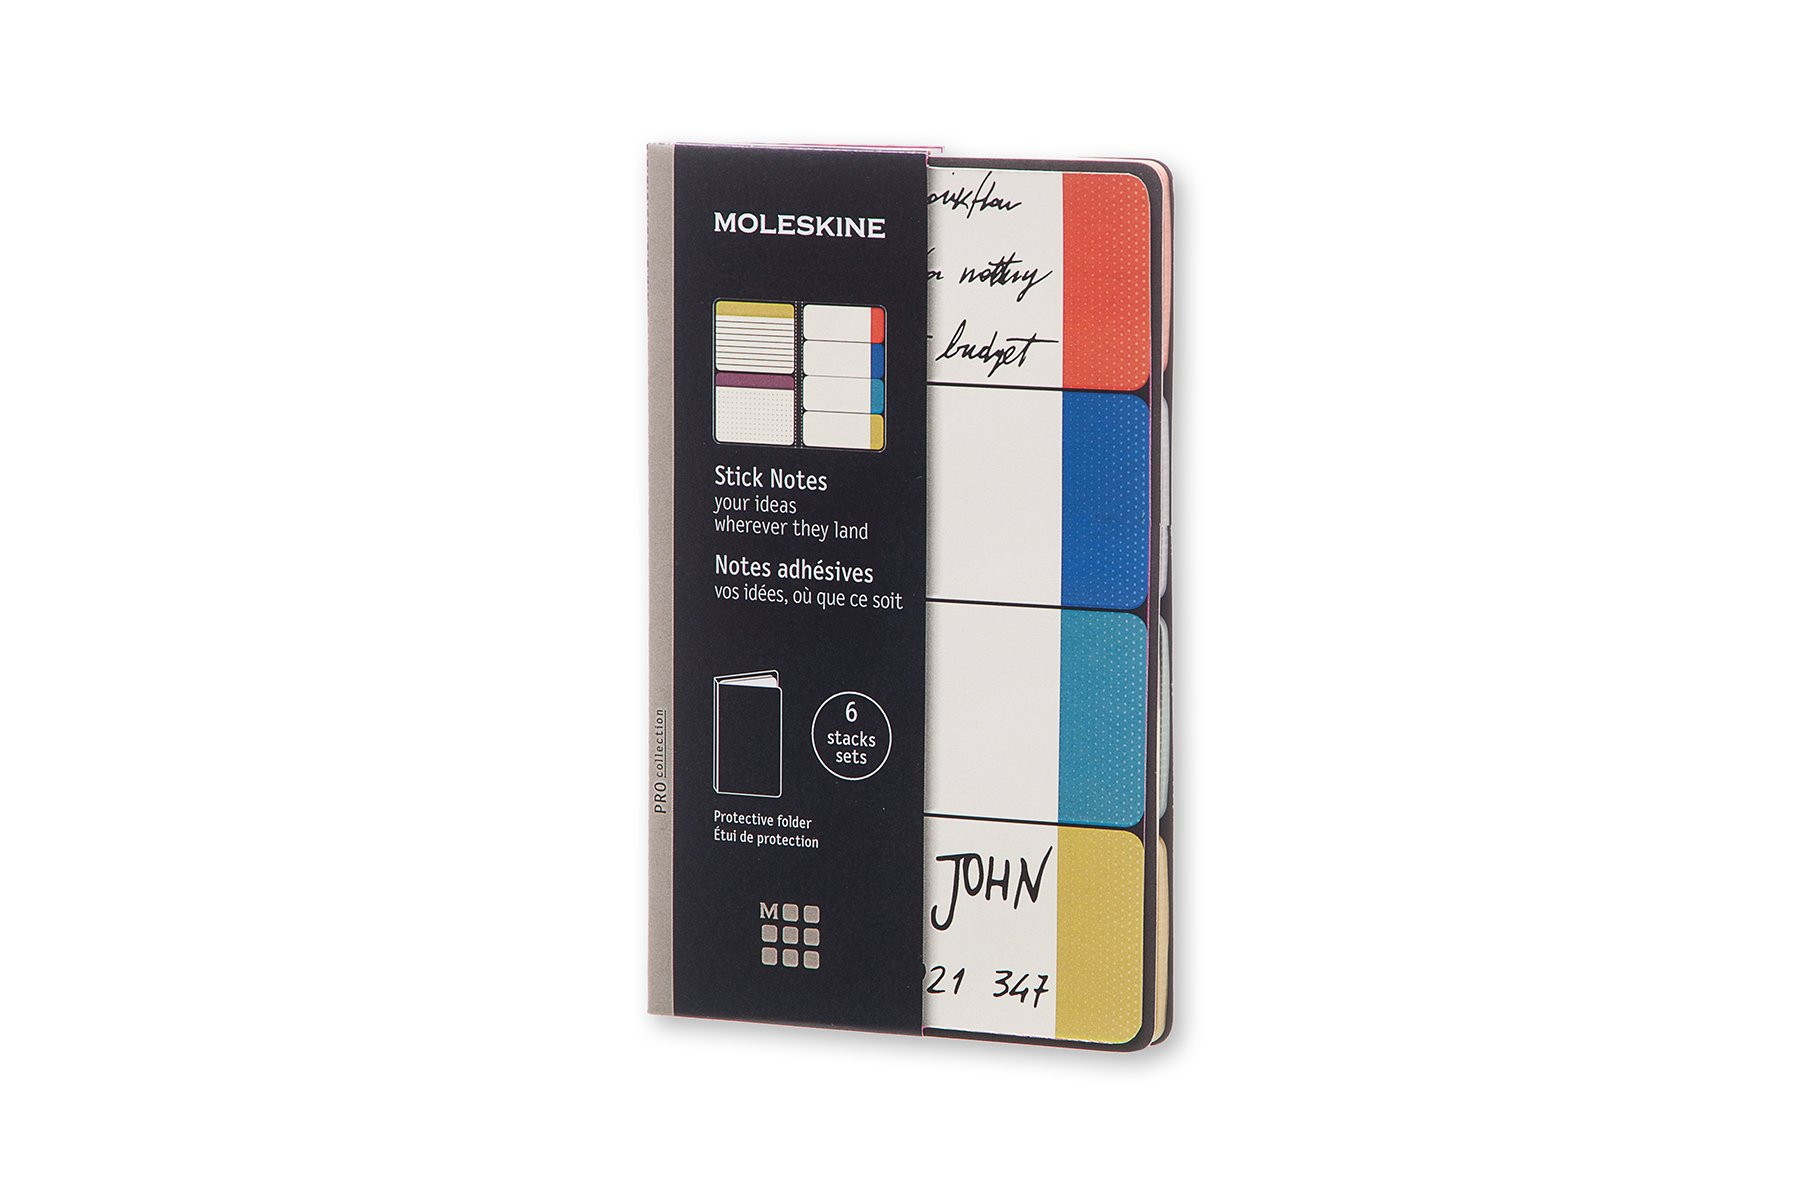 Moleskine Stick Notes Pocket Semicolour (8051272891614)